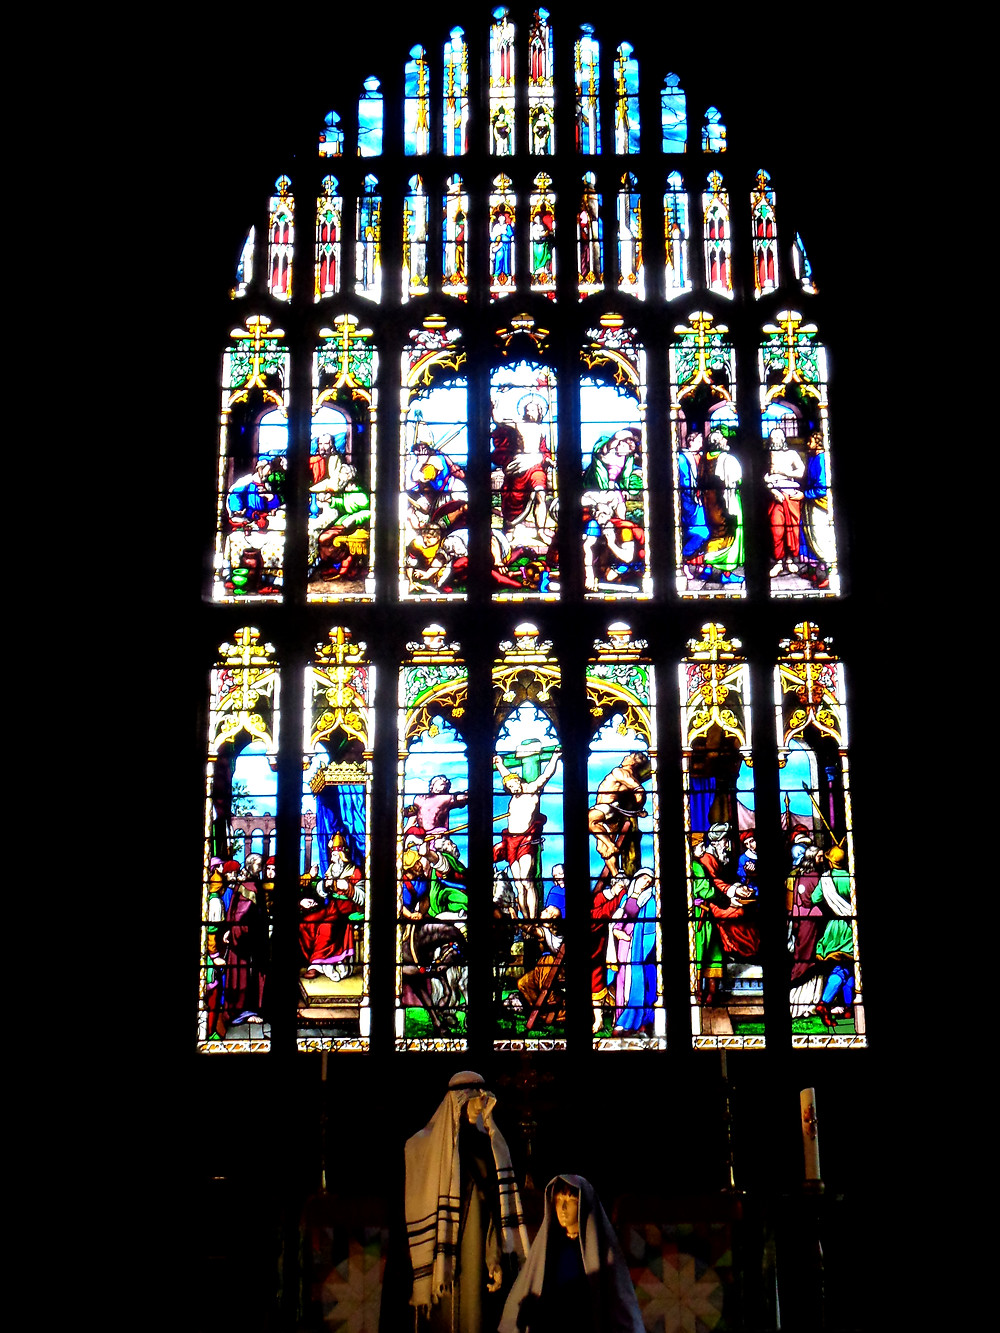 Halifax Minster's chancel window, depicting the Crucifixion, with a Nativity scene in front